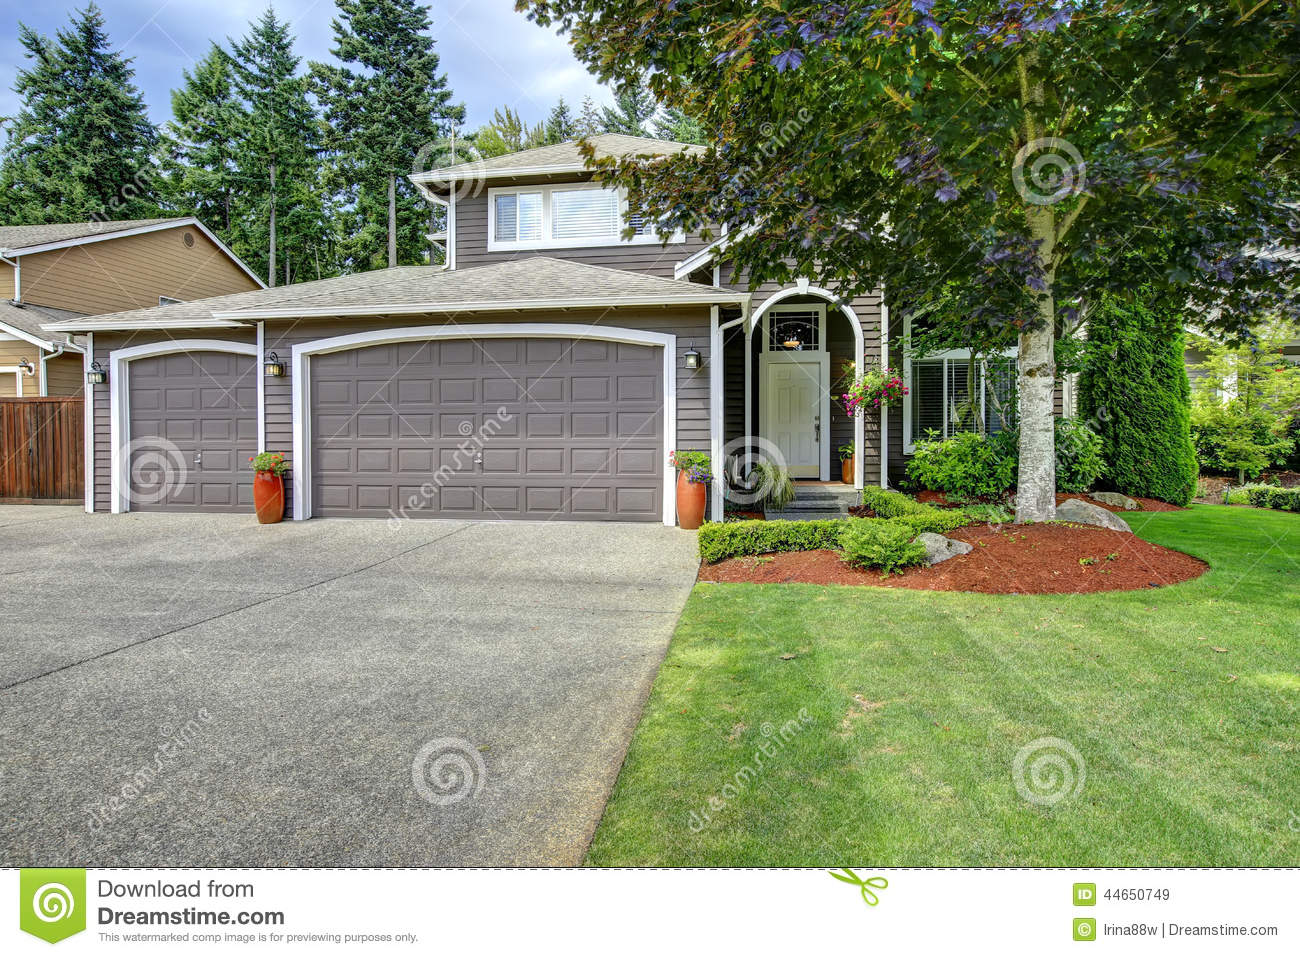 Classic american house with two car garage and driveway for Classic american house